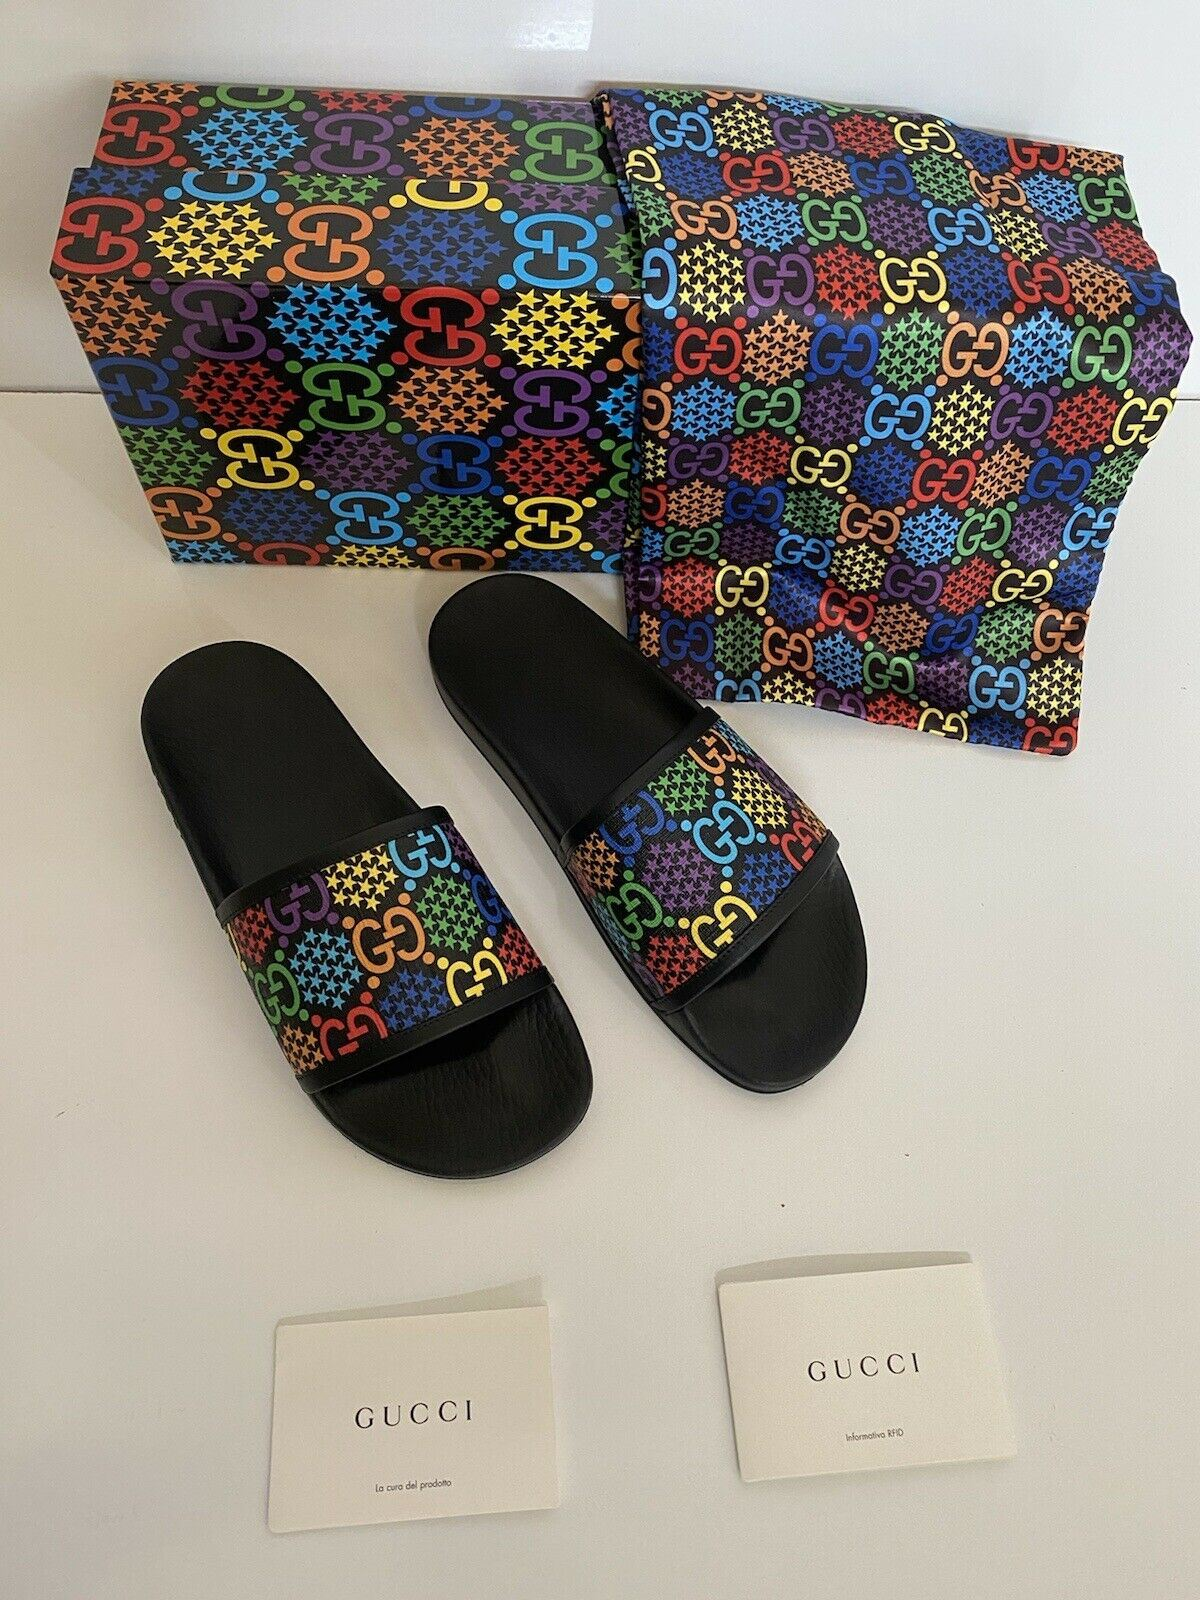 NIB Gucci Womens Rubber GG Psychedelic Logo Black Sandals 9 US 39 Eu IT 610090